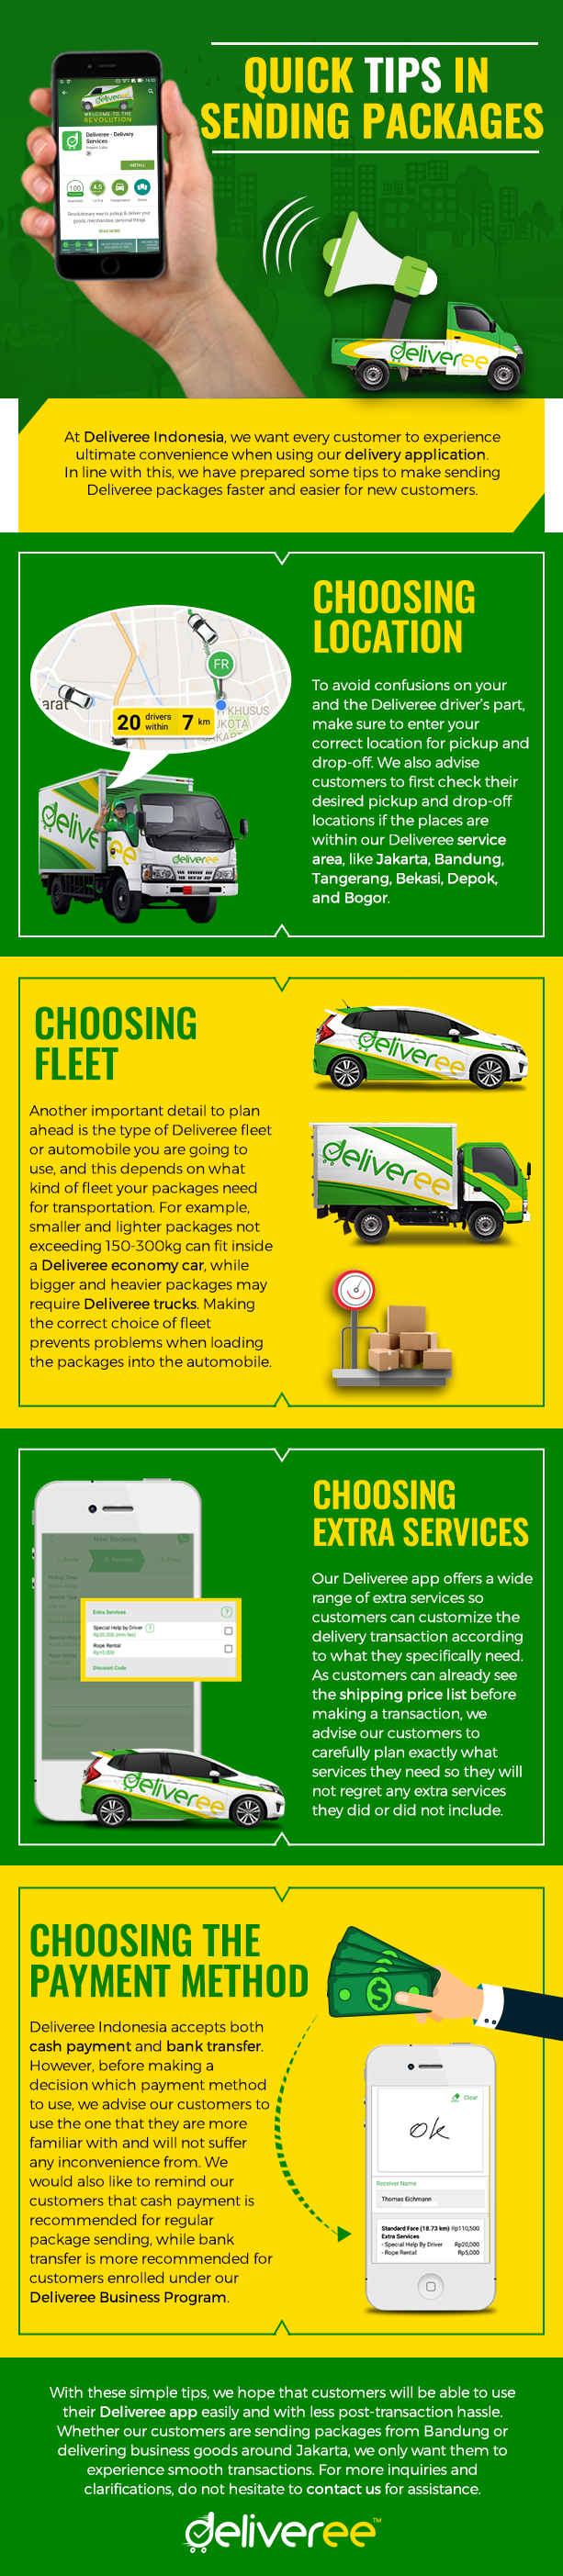 deliveree,shipping price list,application delivery,deliveree service area,bandung,business program